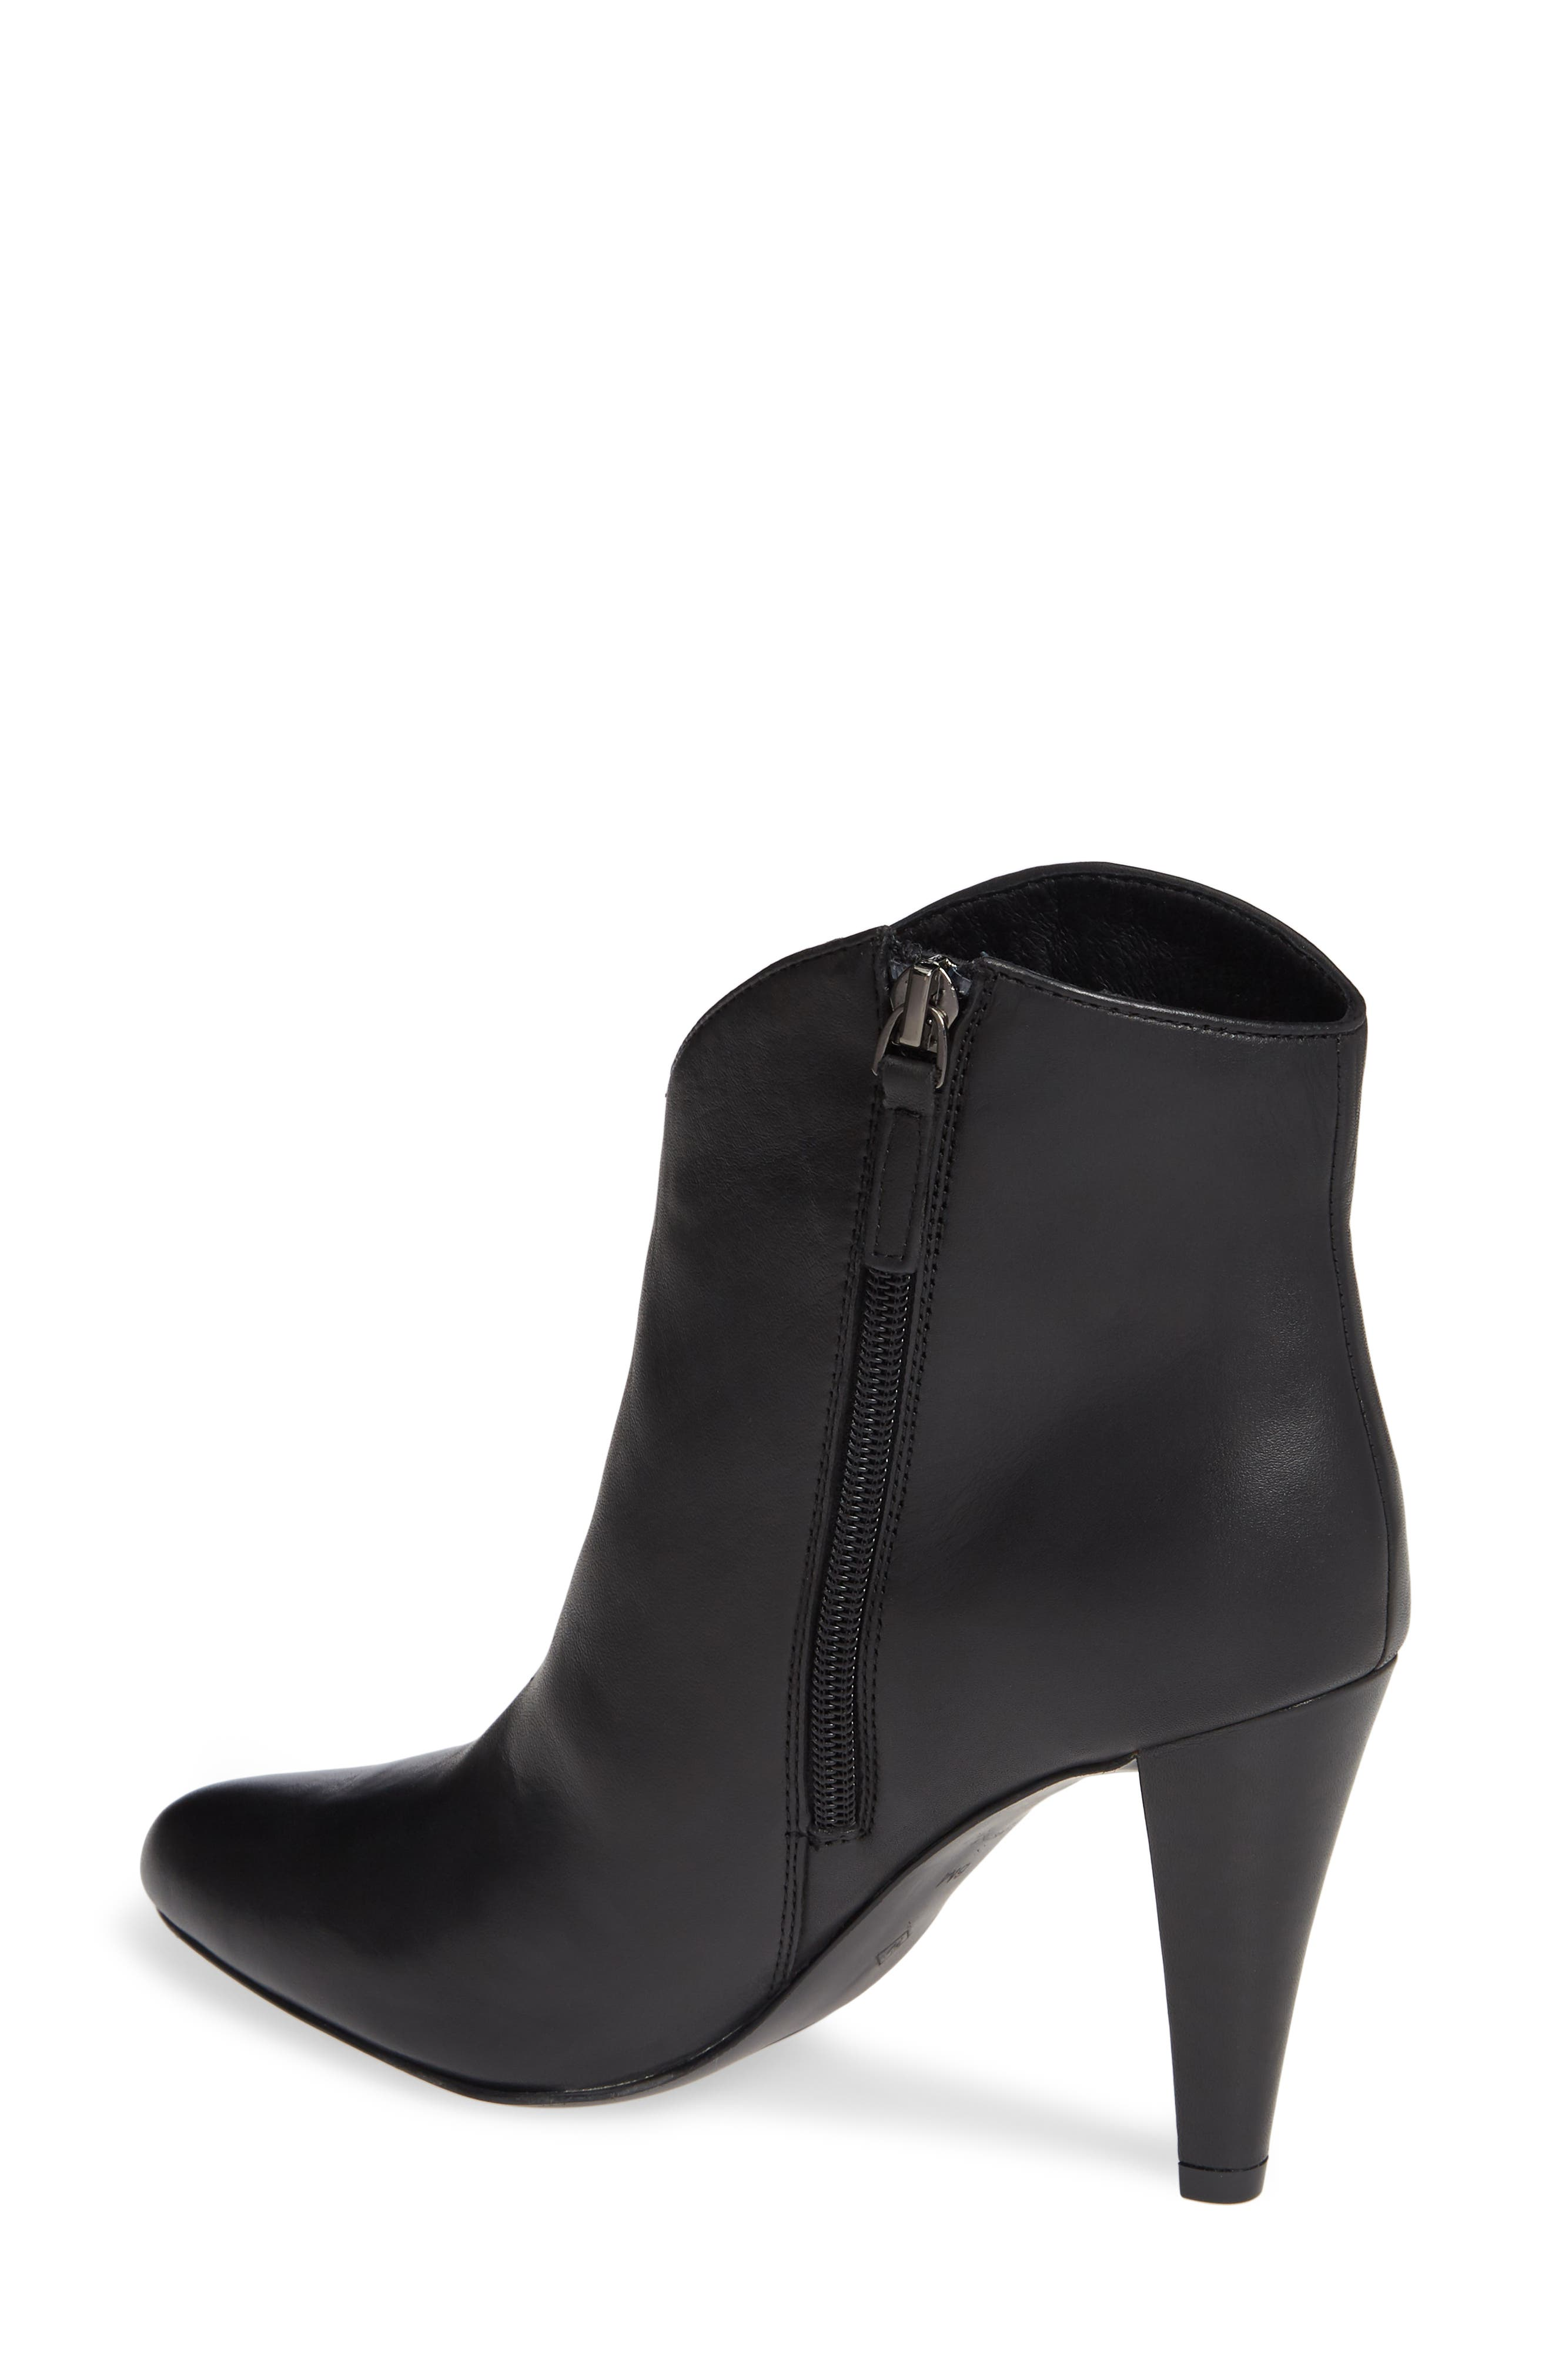 Makayla Bootie,                             Alternate thumbnail 2, color,                             BLACK LEATHER